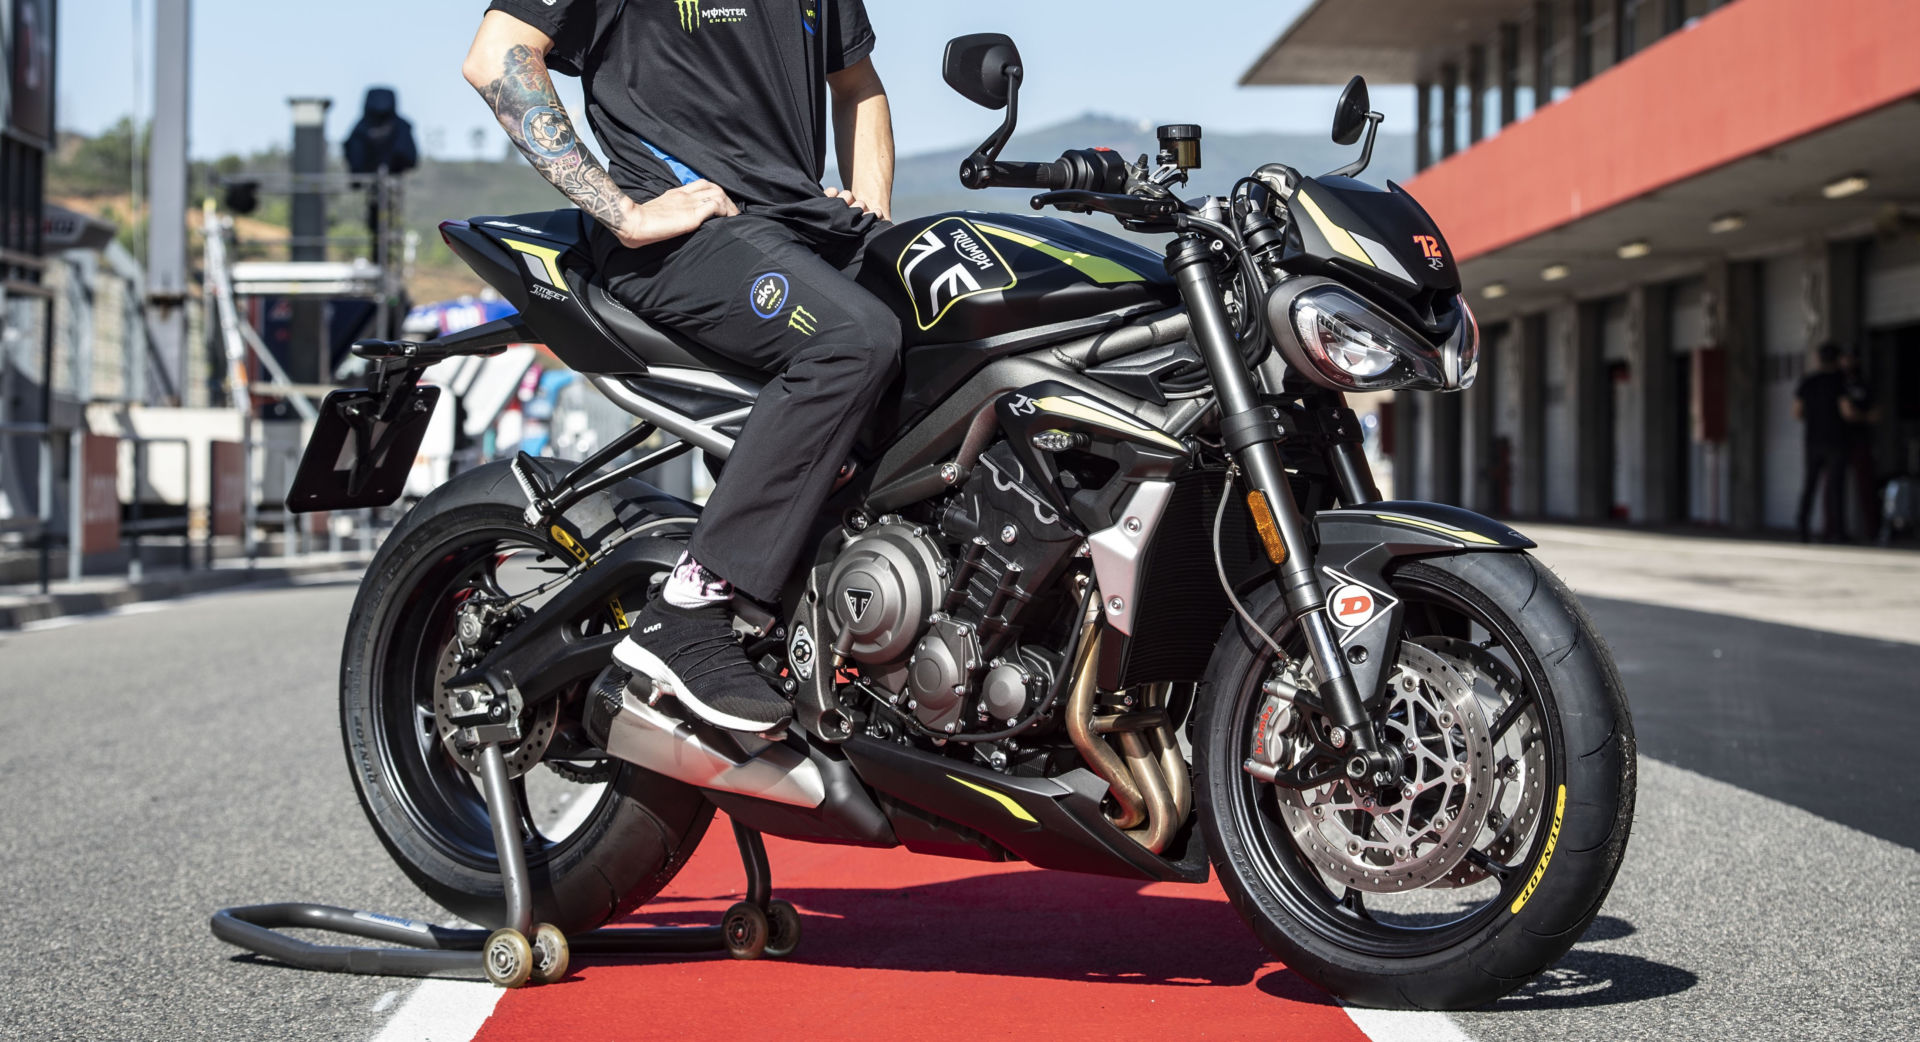 Triumph PTR Racing Team plans to base its British Supersport effort on the Triumph Street Triple RS. Photo courtesy Triumph.